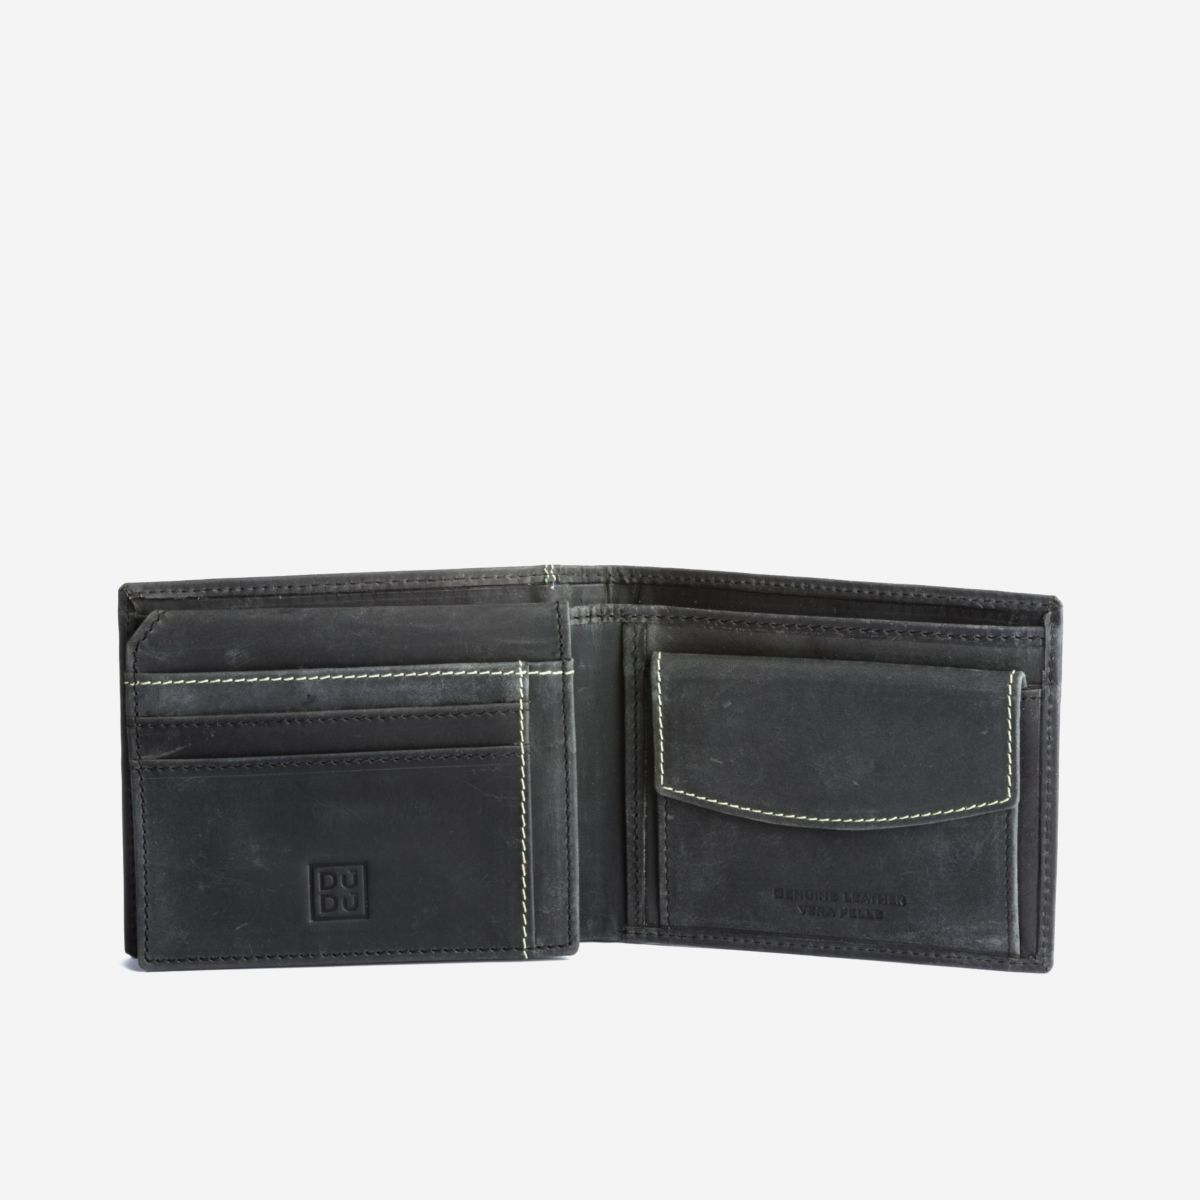 DuDu Classic Mans Billfold Wallet with Coin Pocket - Black